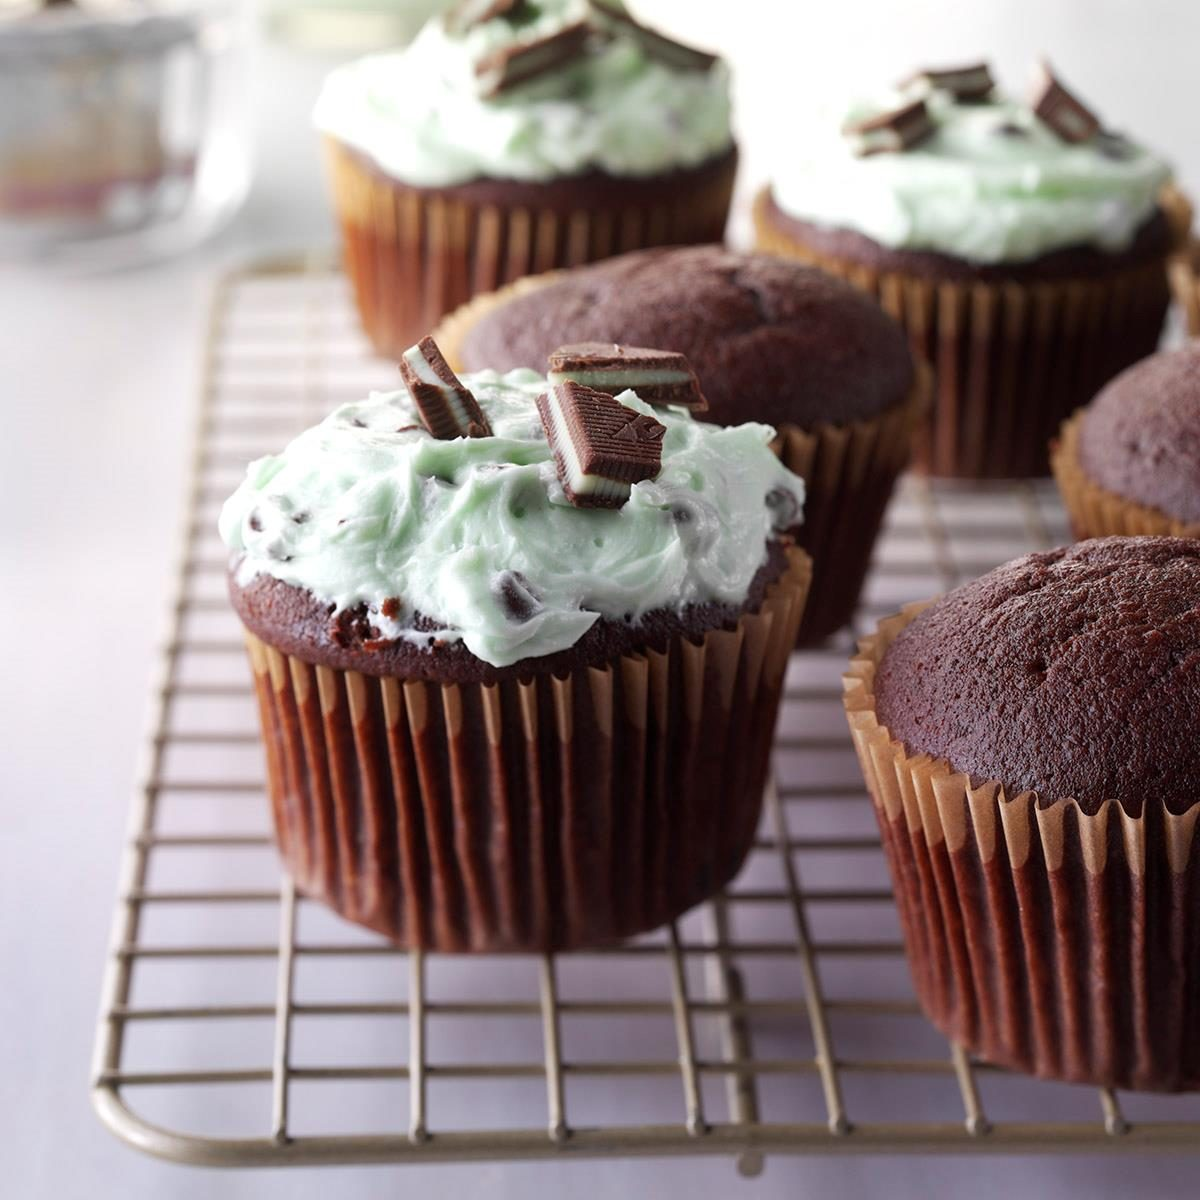 Nana's Chocolate Cupcakes with Mint Frosting